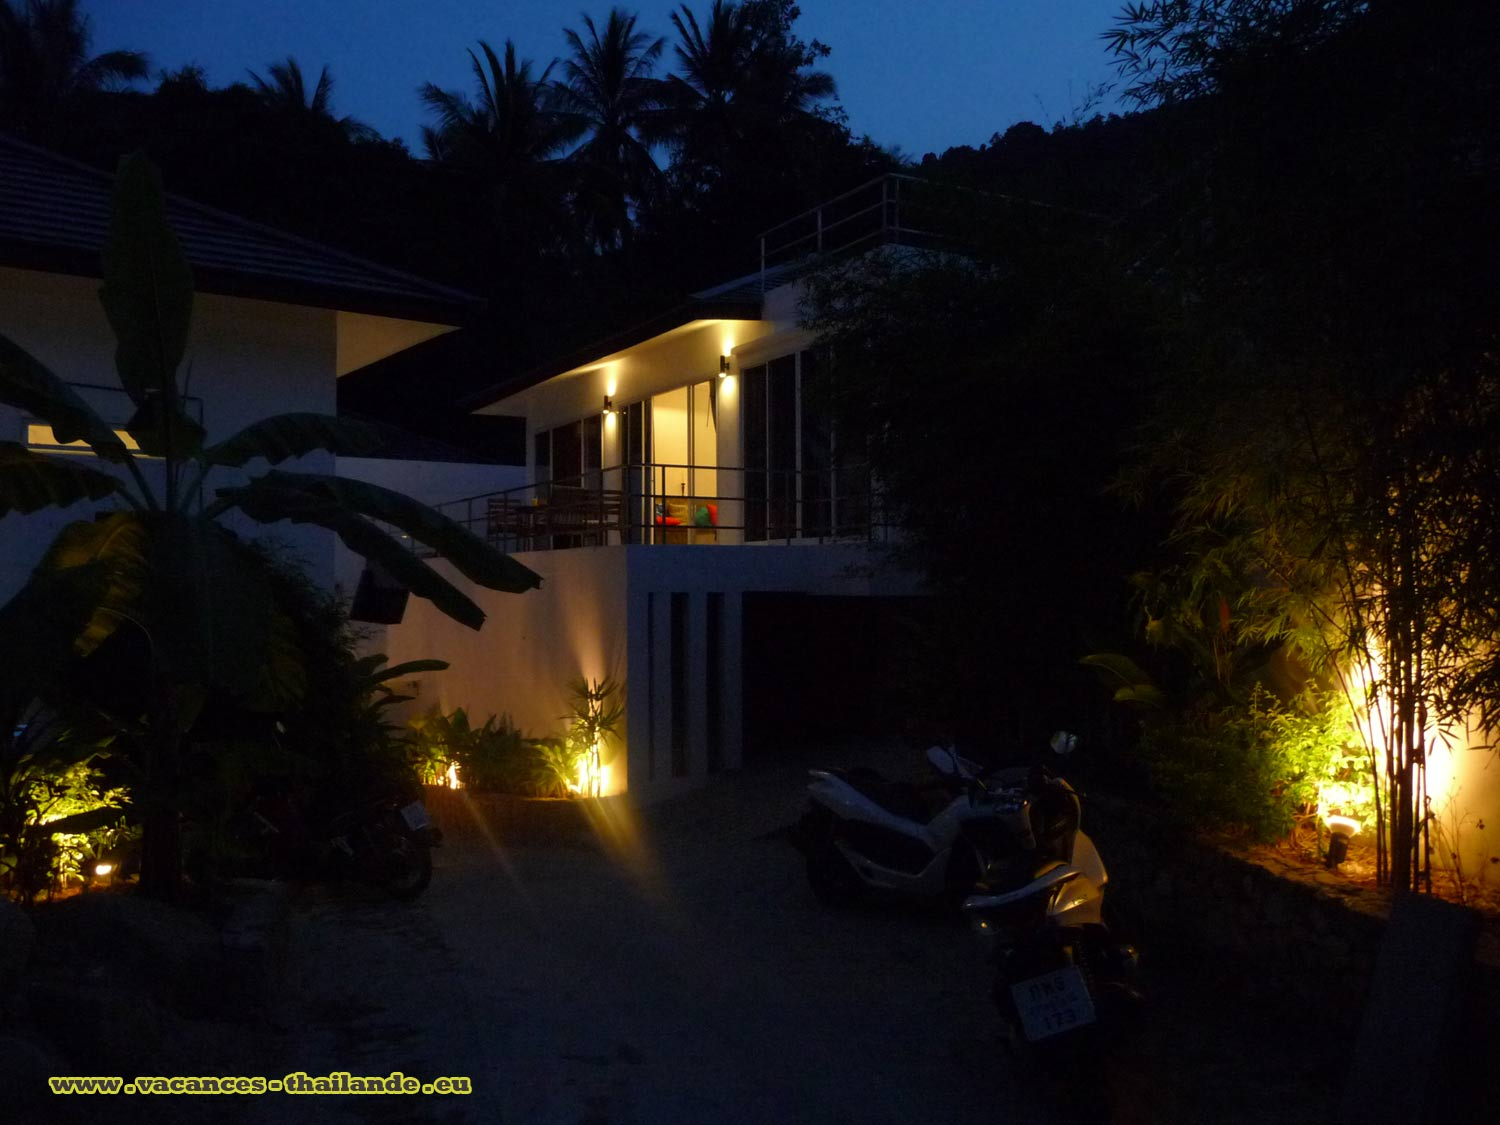 Photo 47 English cheap rental pool villa Koh Samui thailand view the night